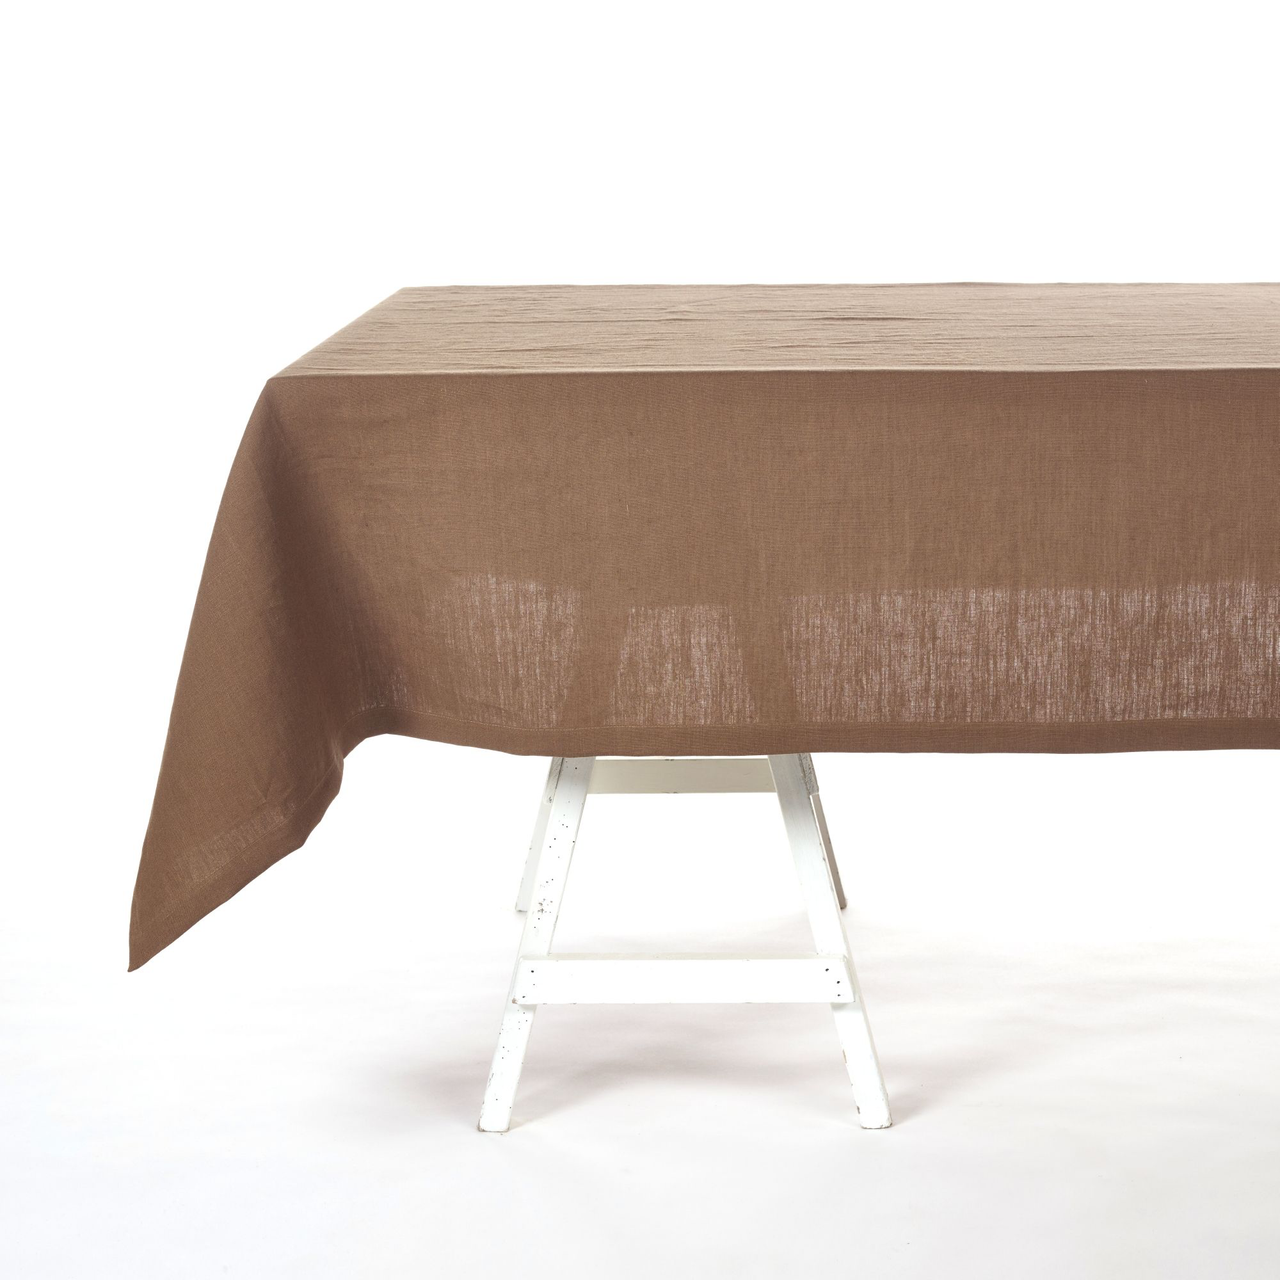 timmery tablecloth, libeco, table linen, - adorn.house